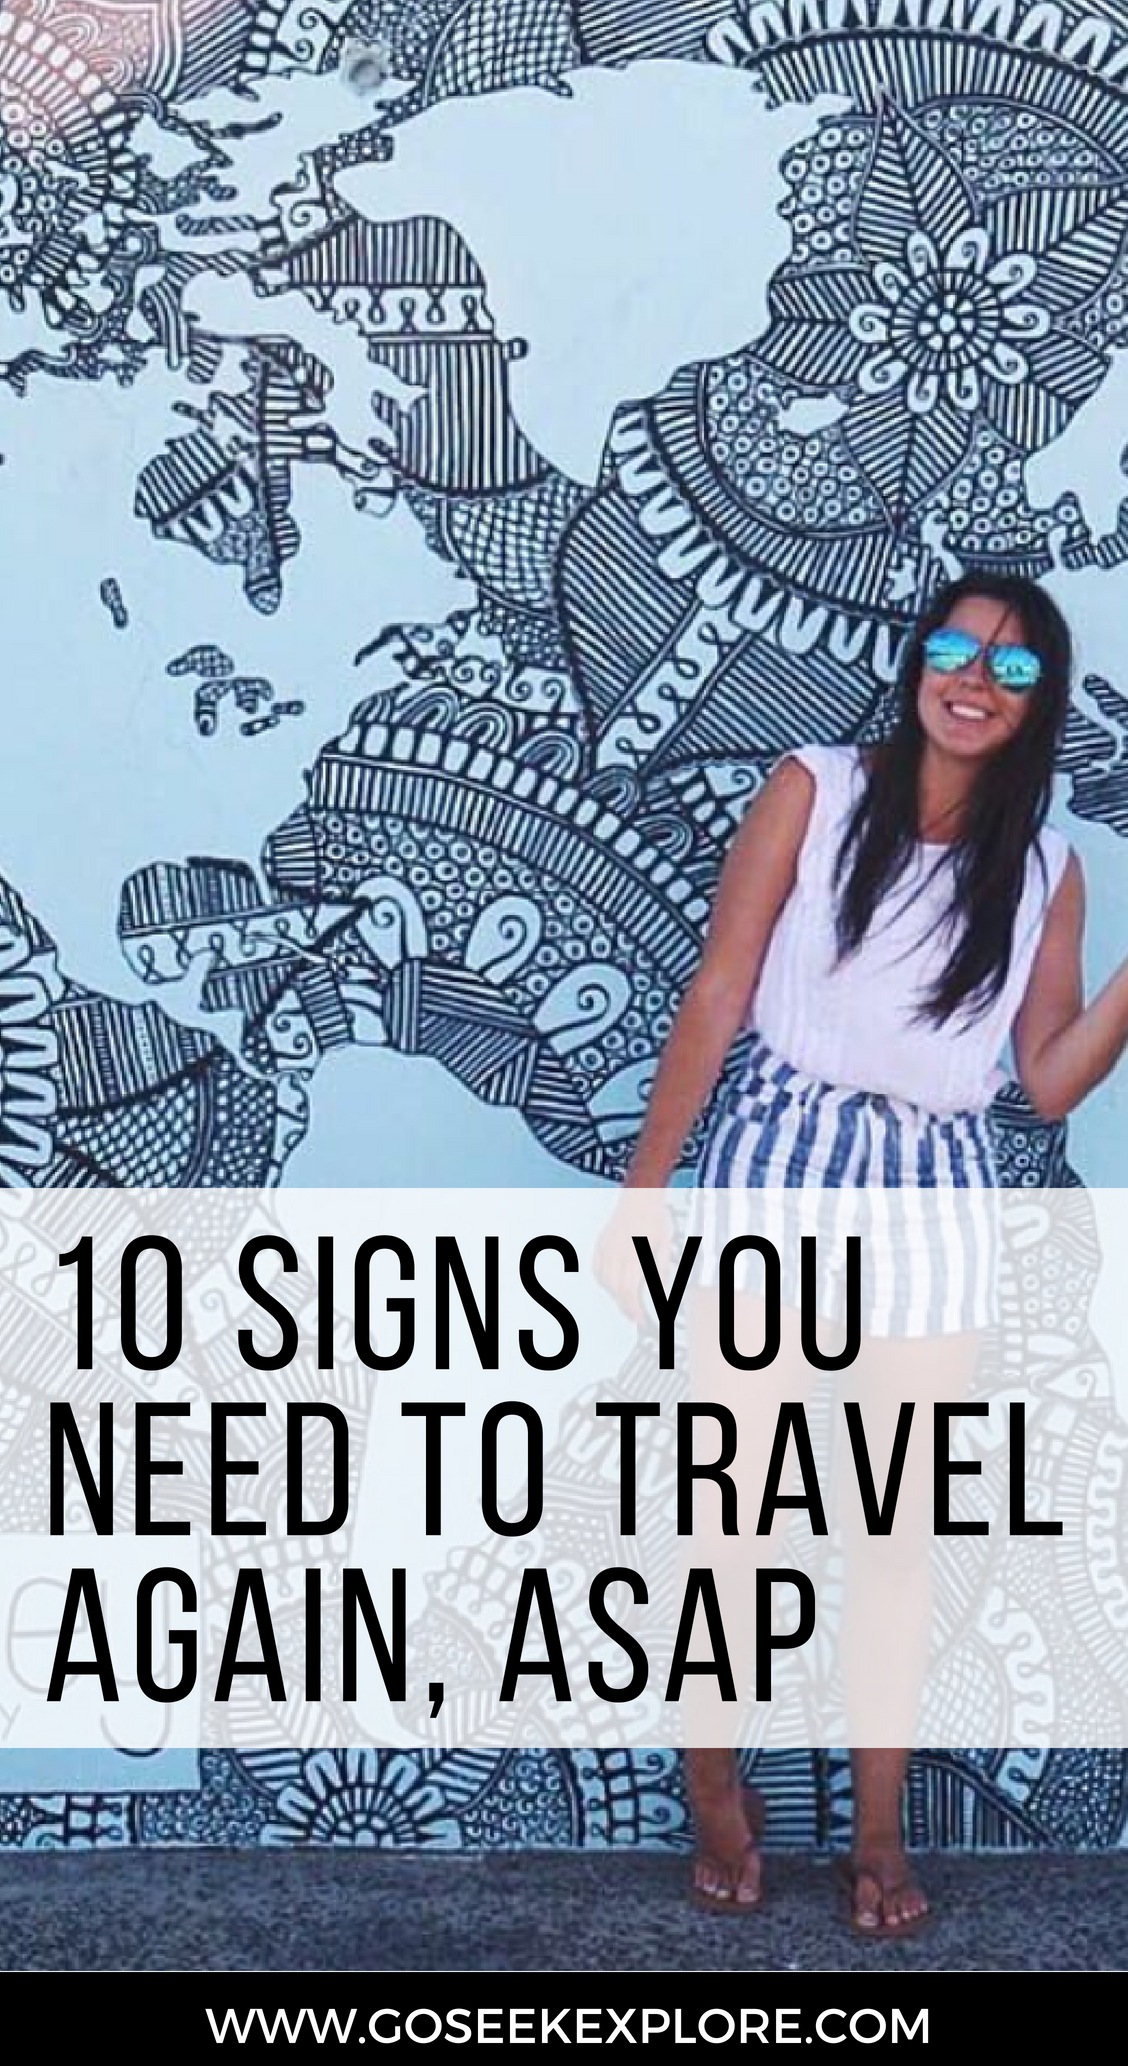 10 Signs You Need to Travel Again...ASAP! Yeah, all of you with wanderlust, here's your permission to book that next trip. // goseekexplore.com // 10-signs-need-to-travel-again-asap